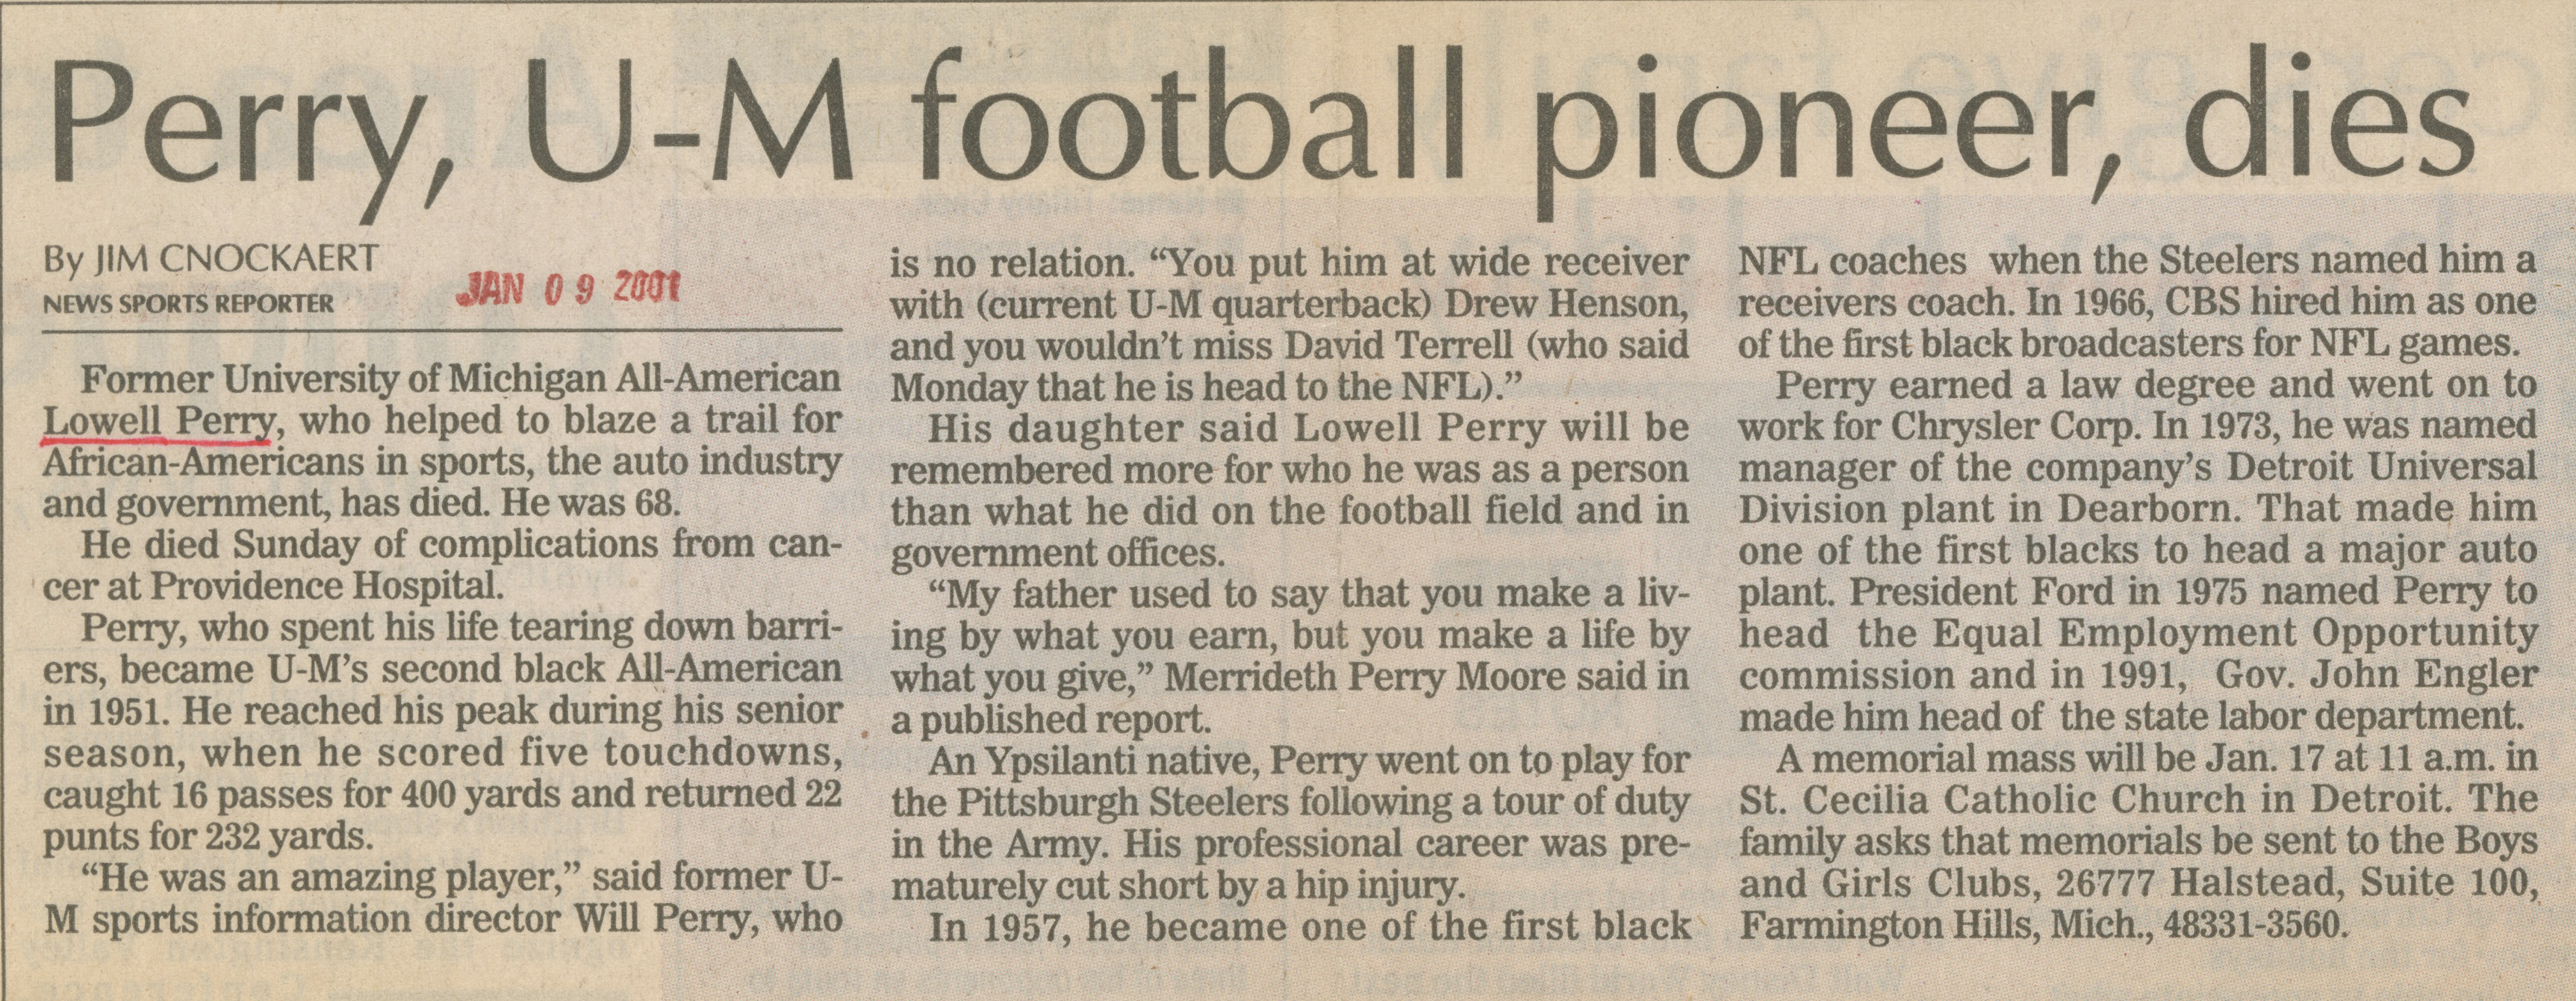 Perry, U-M Football Pioneer, Dies image